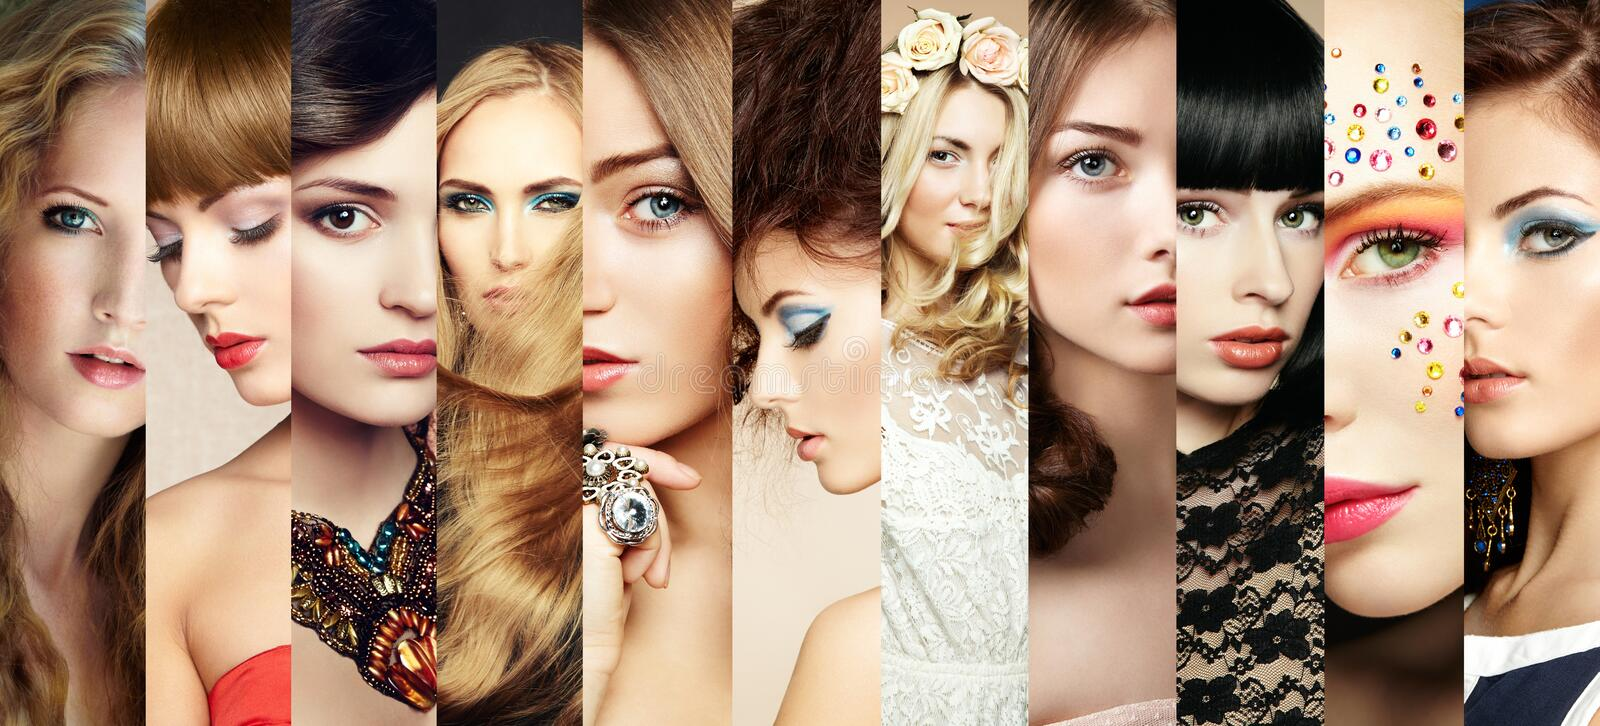 Beauty collage. Faces of women royalty free stock photo